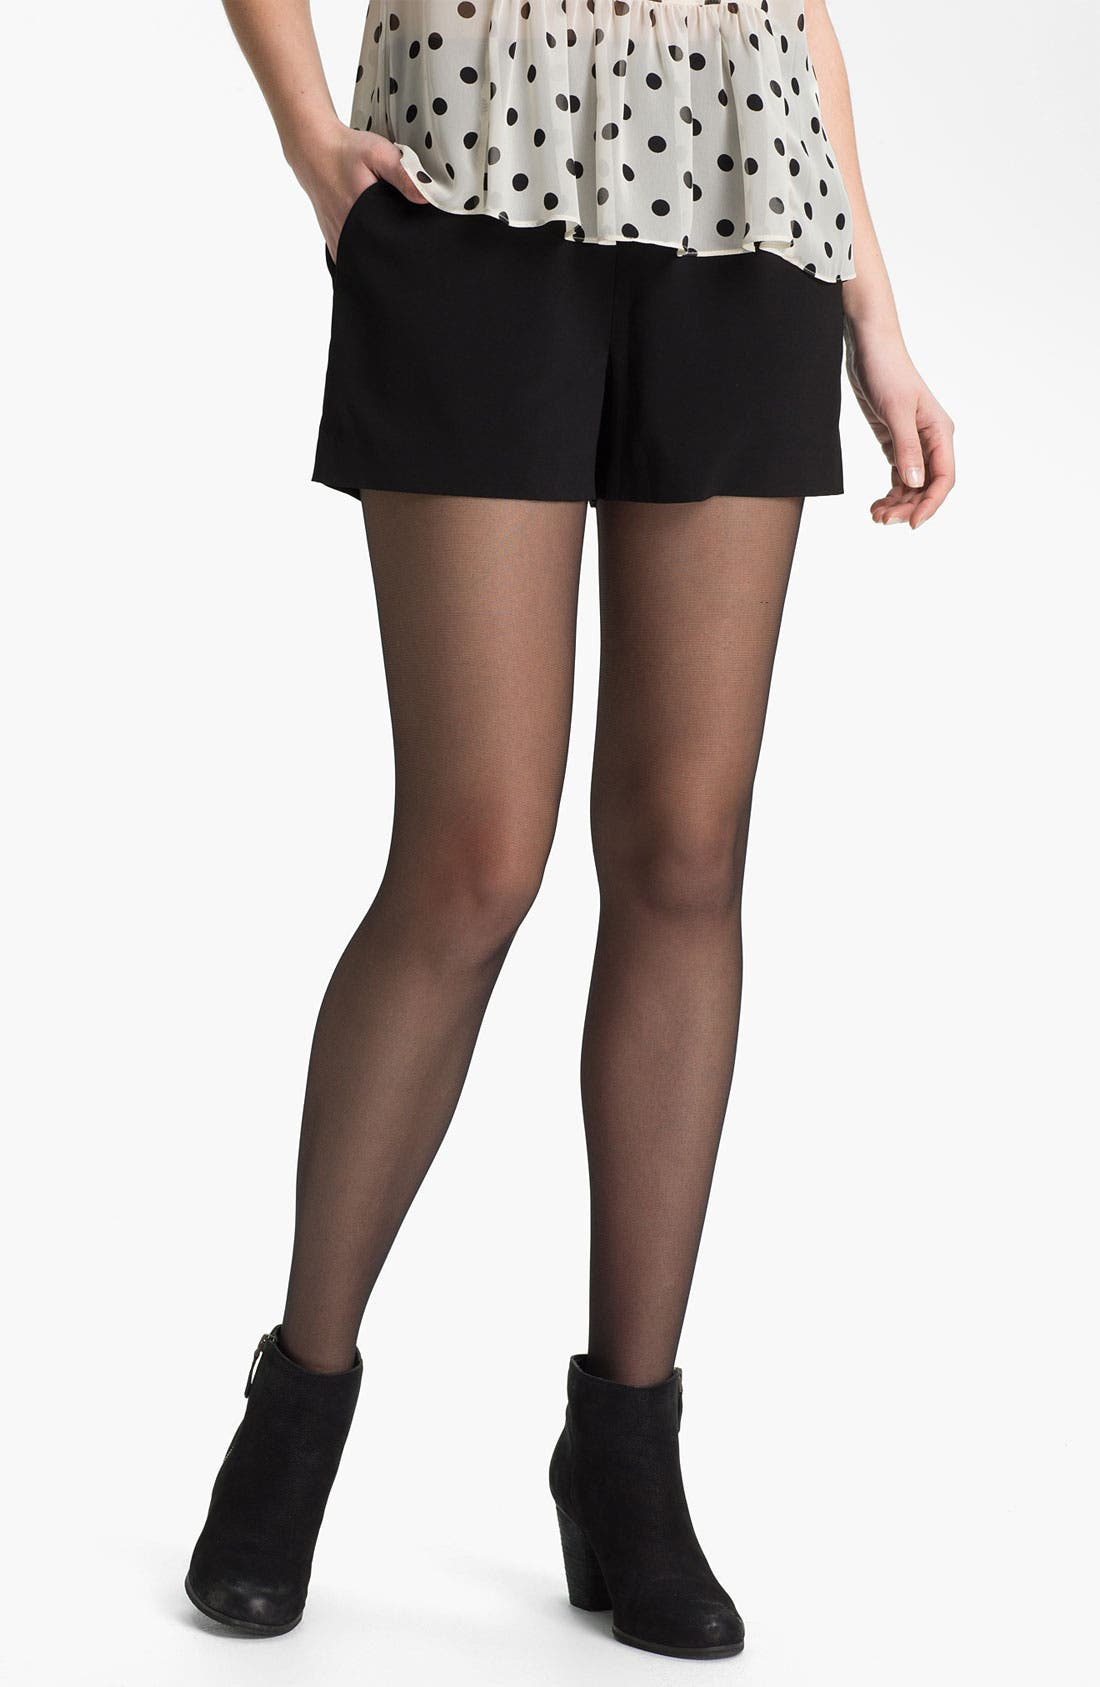 Alternate Image 1 Selected - BP. Silky High Waist Shorts (Juniors)